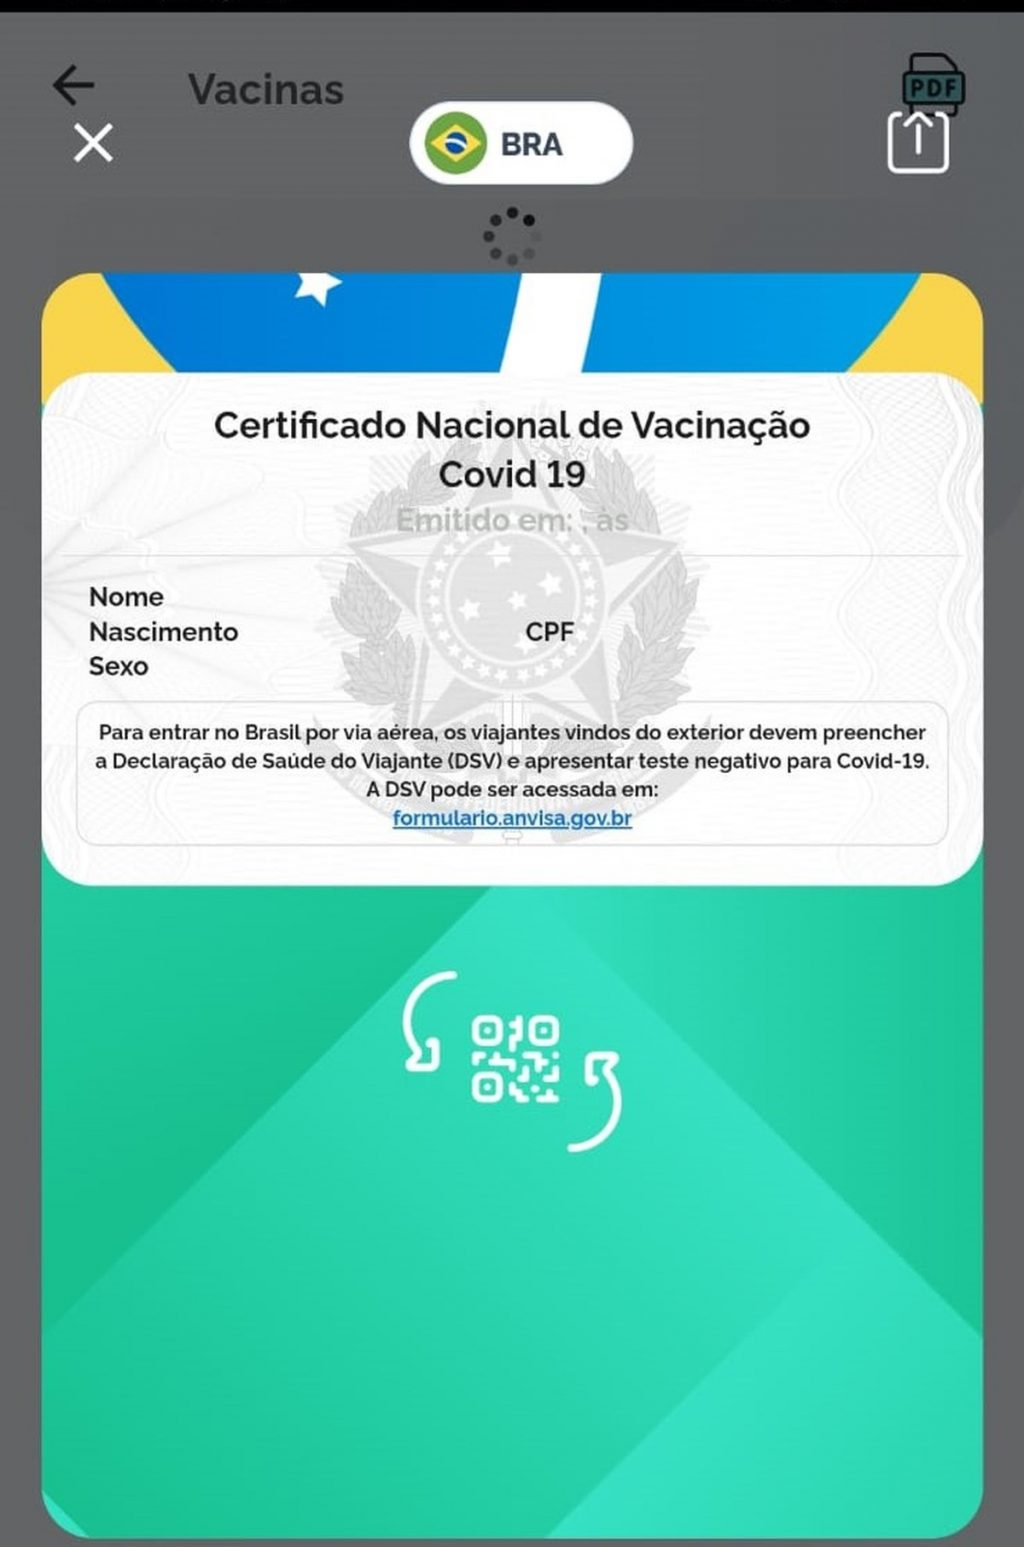 Connect SUS becomes unstable and Brazilians face problems obtaining a certificate of vaccination against Covid |  Serum